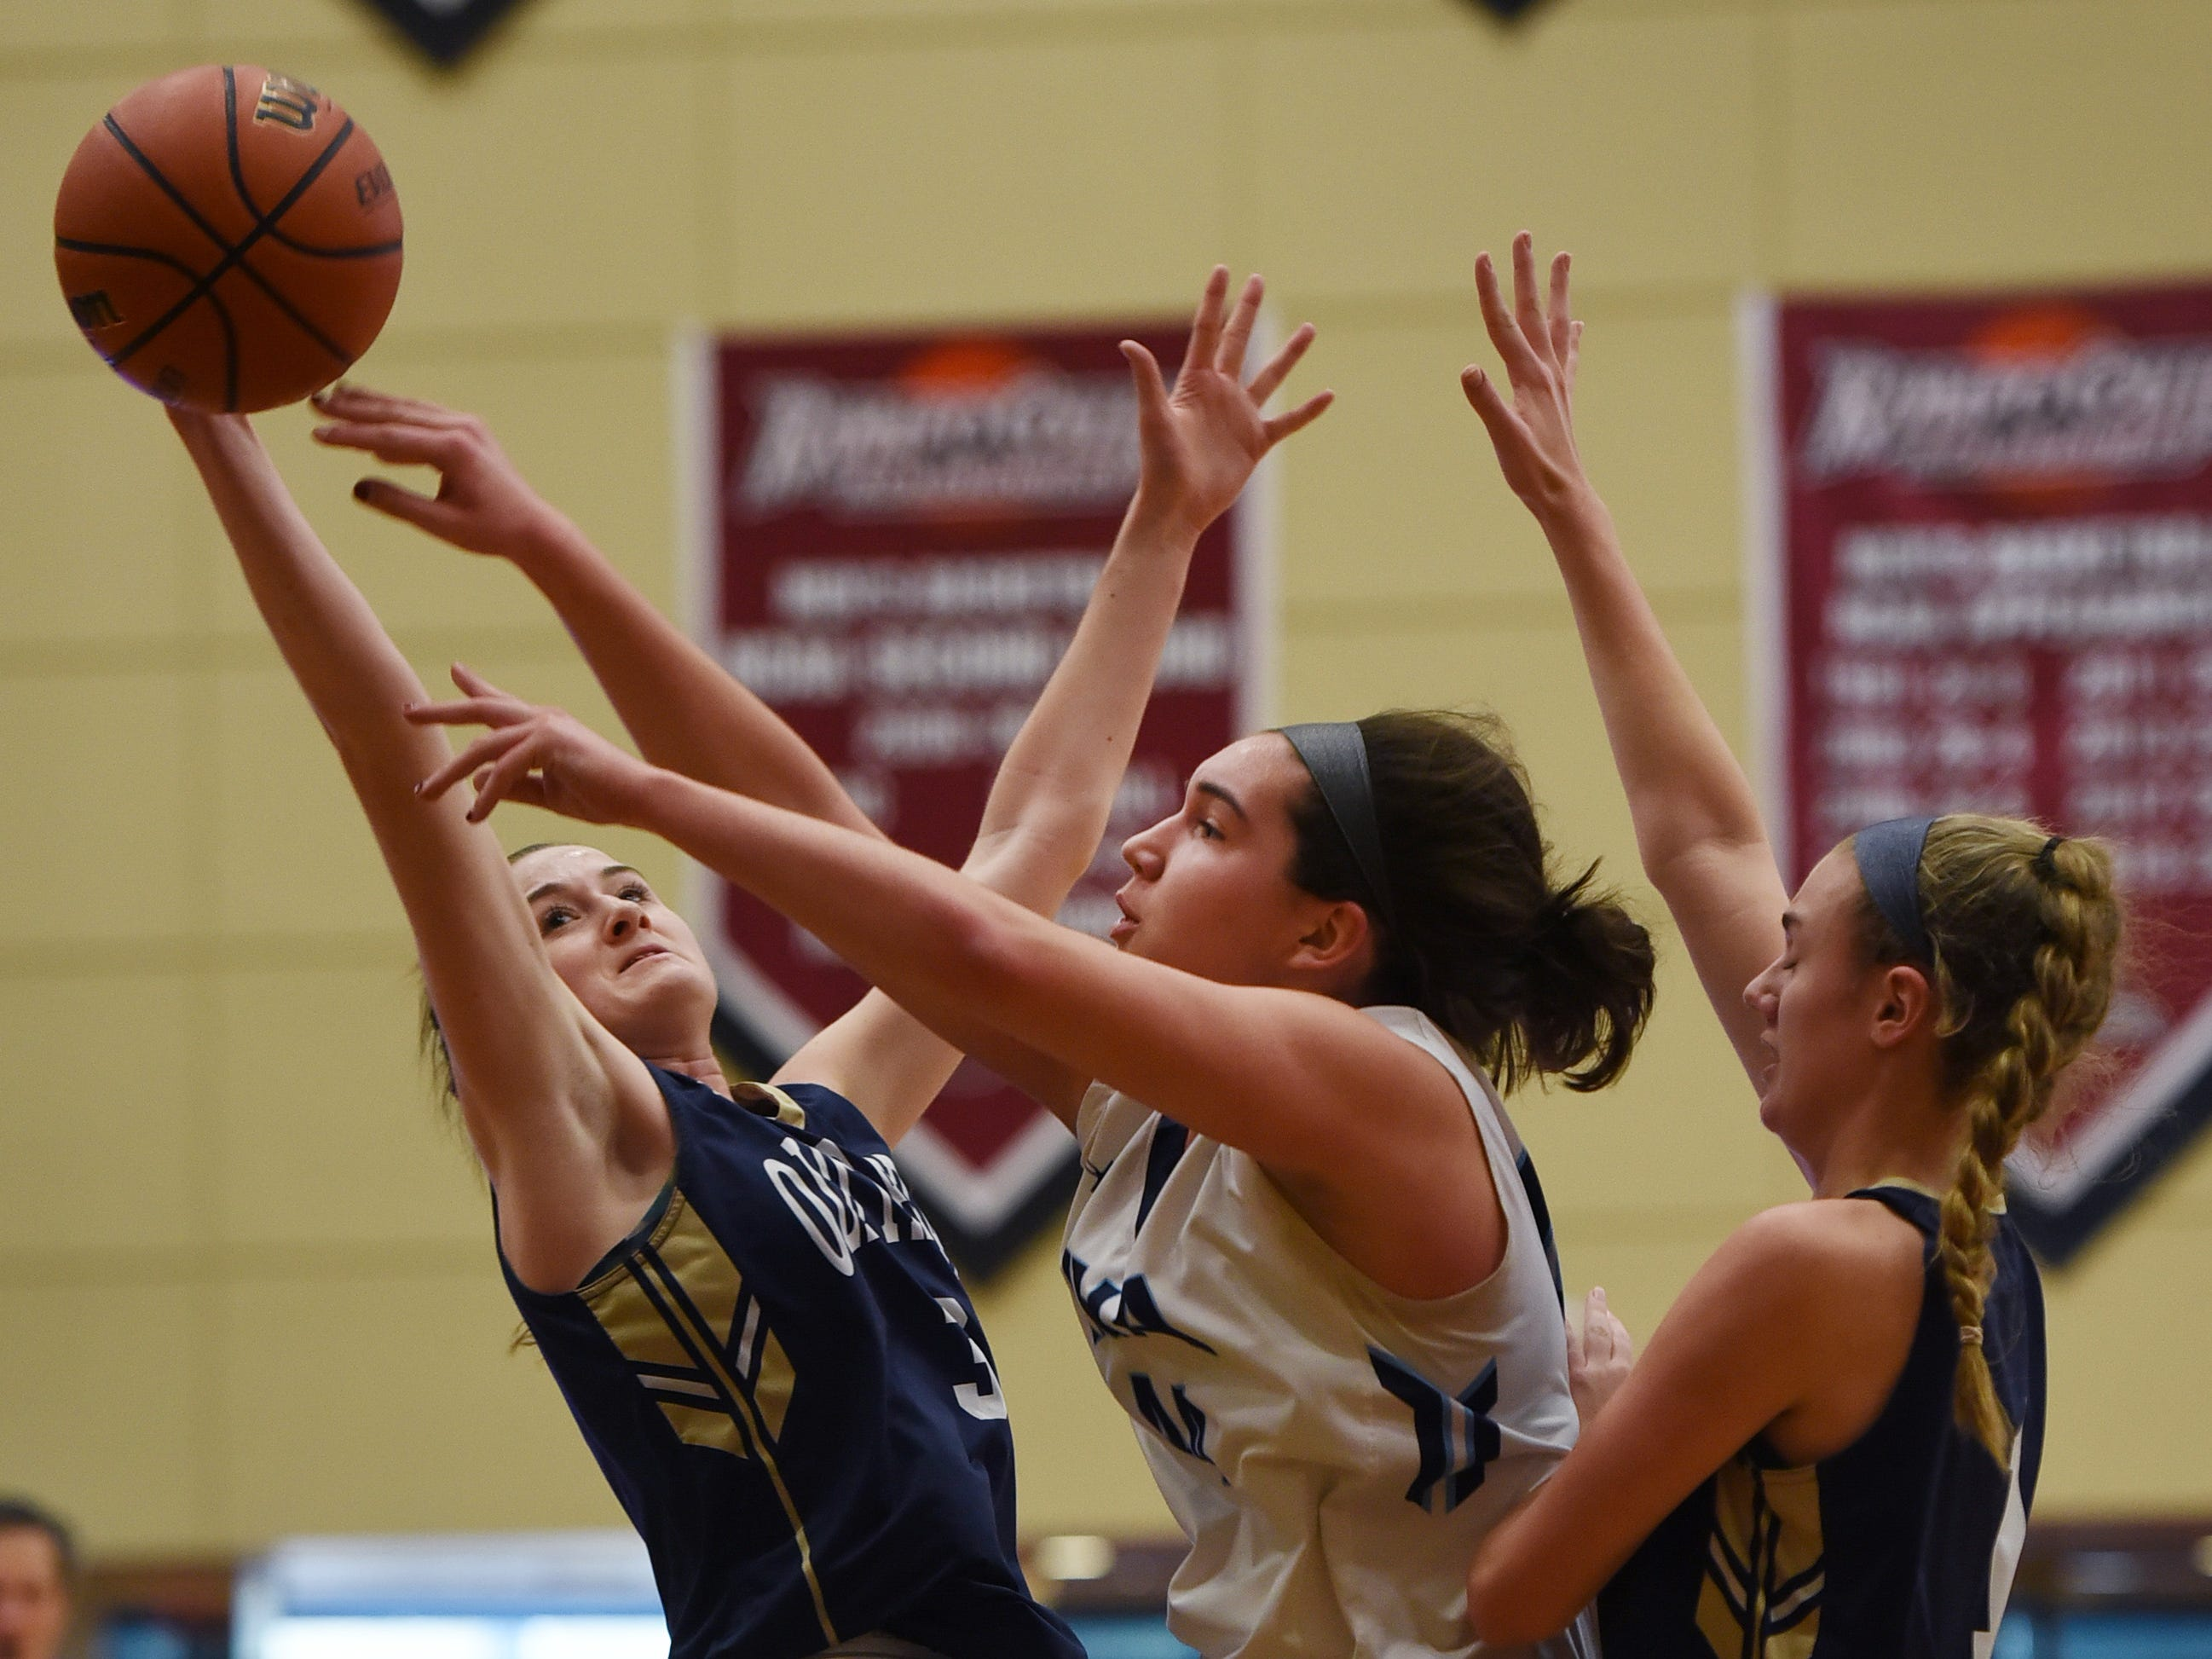 Emma Matesic (no. 44) of Immaculate Heart battles for the loose ball against Noelle Gonzalez (no. 3) of NV/Old Tappan in the first half during the 2019 Bergen County girls basketball championship semifinal at Ramapo College in Mahwah on 02/10/19.